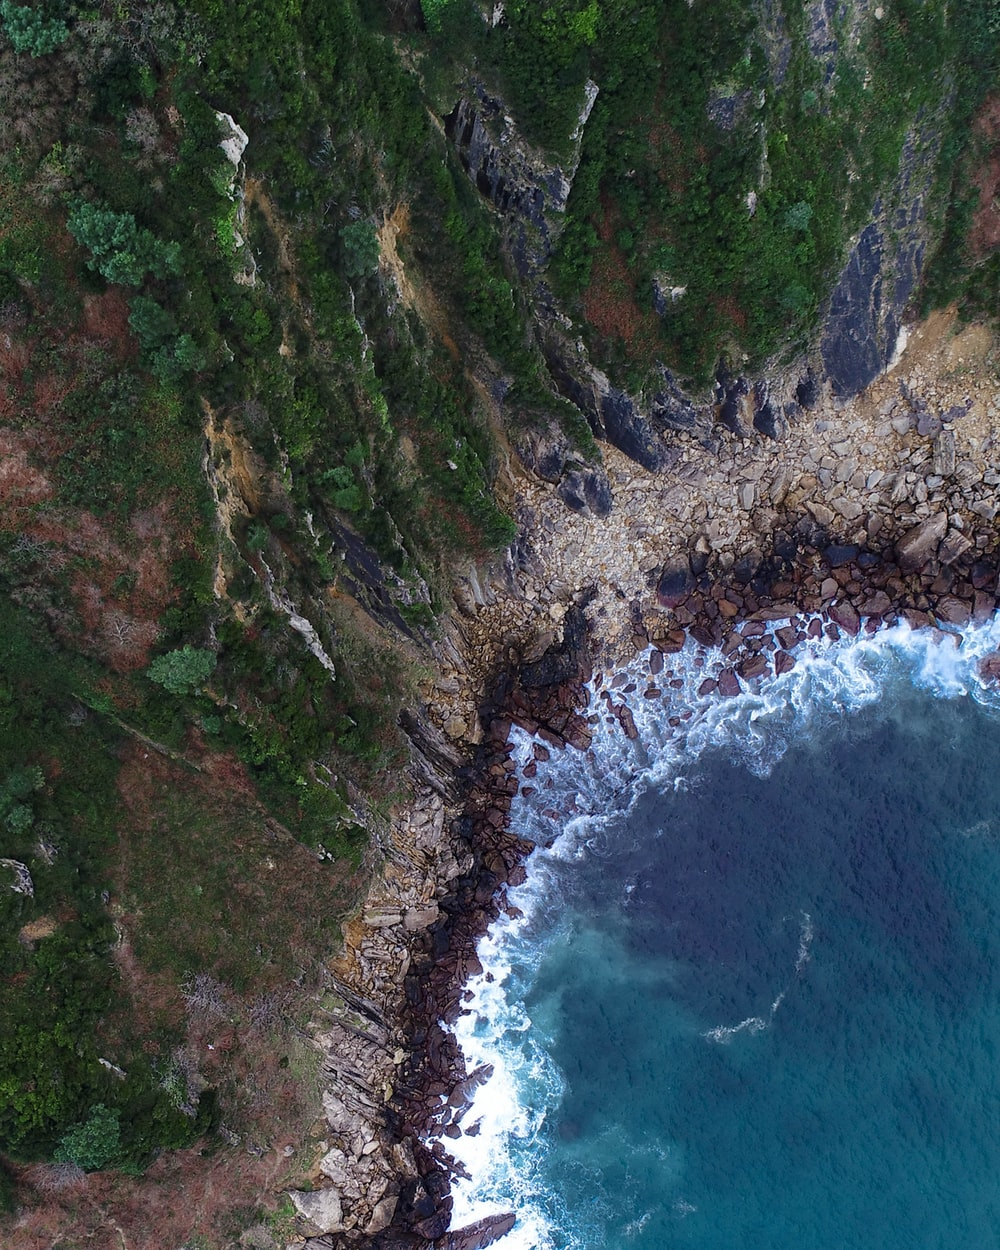 bird's-eye view photography of ocean near island